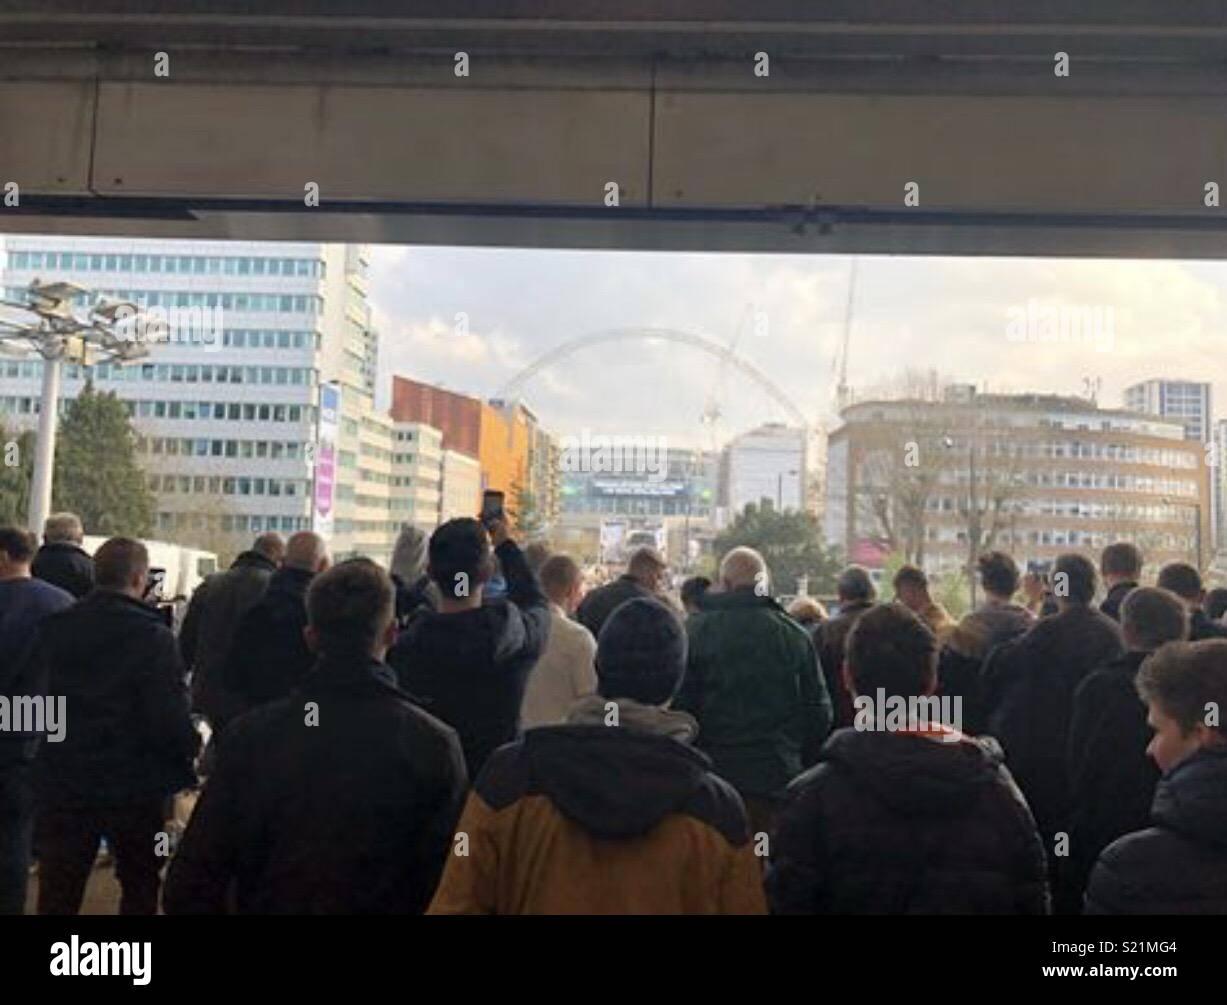 Arriving at Wembley - Stock Image